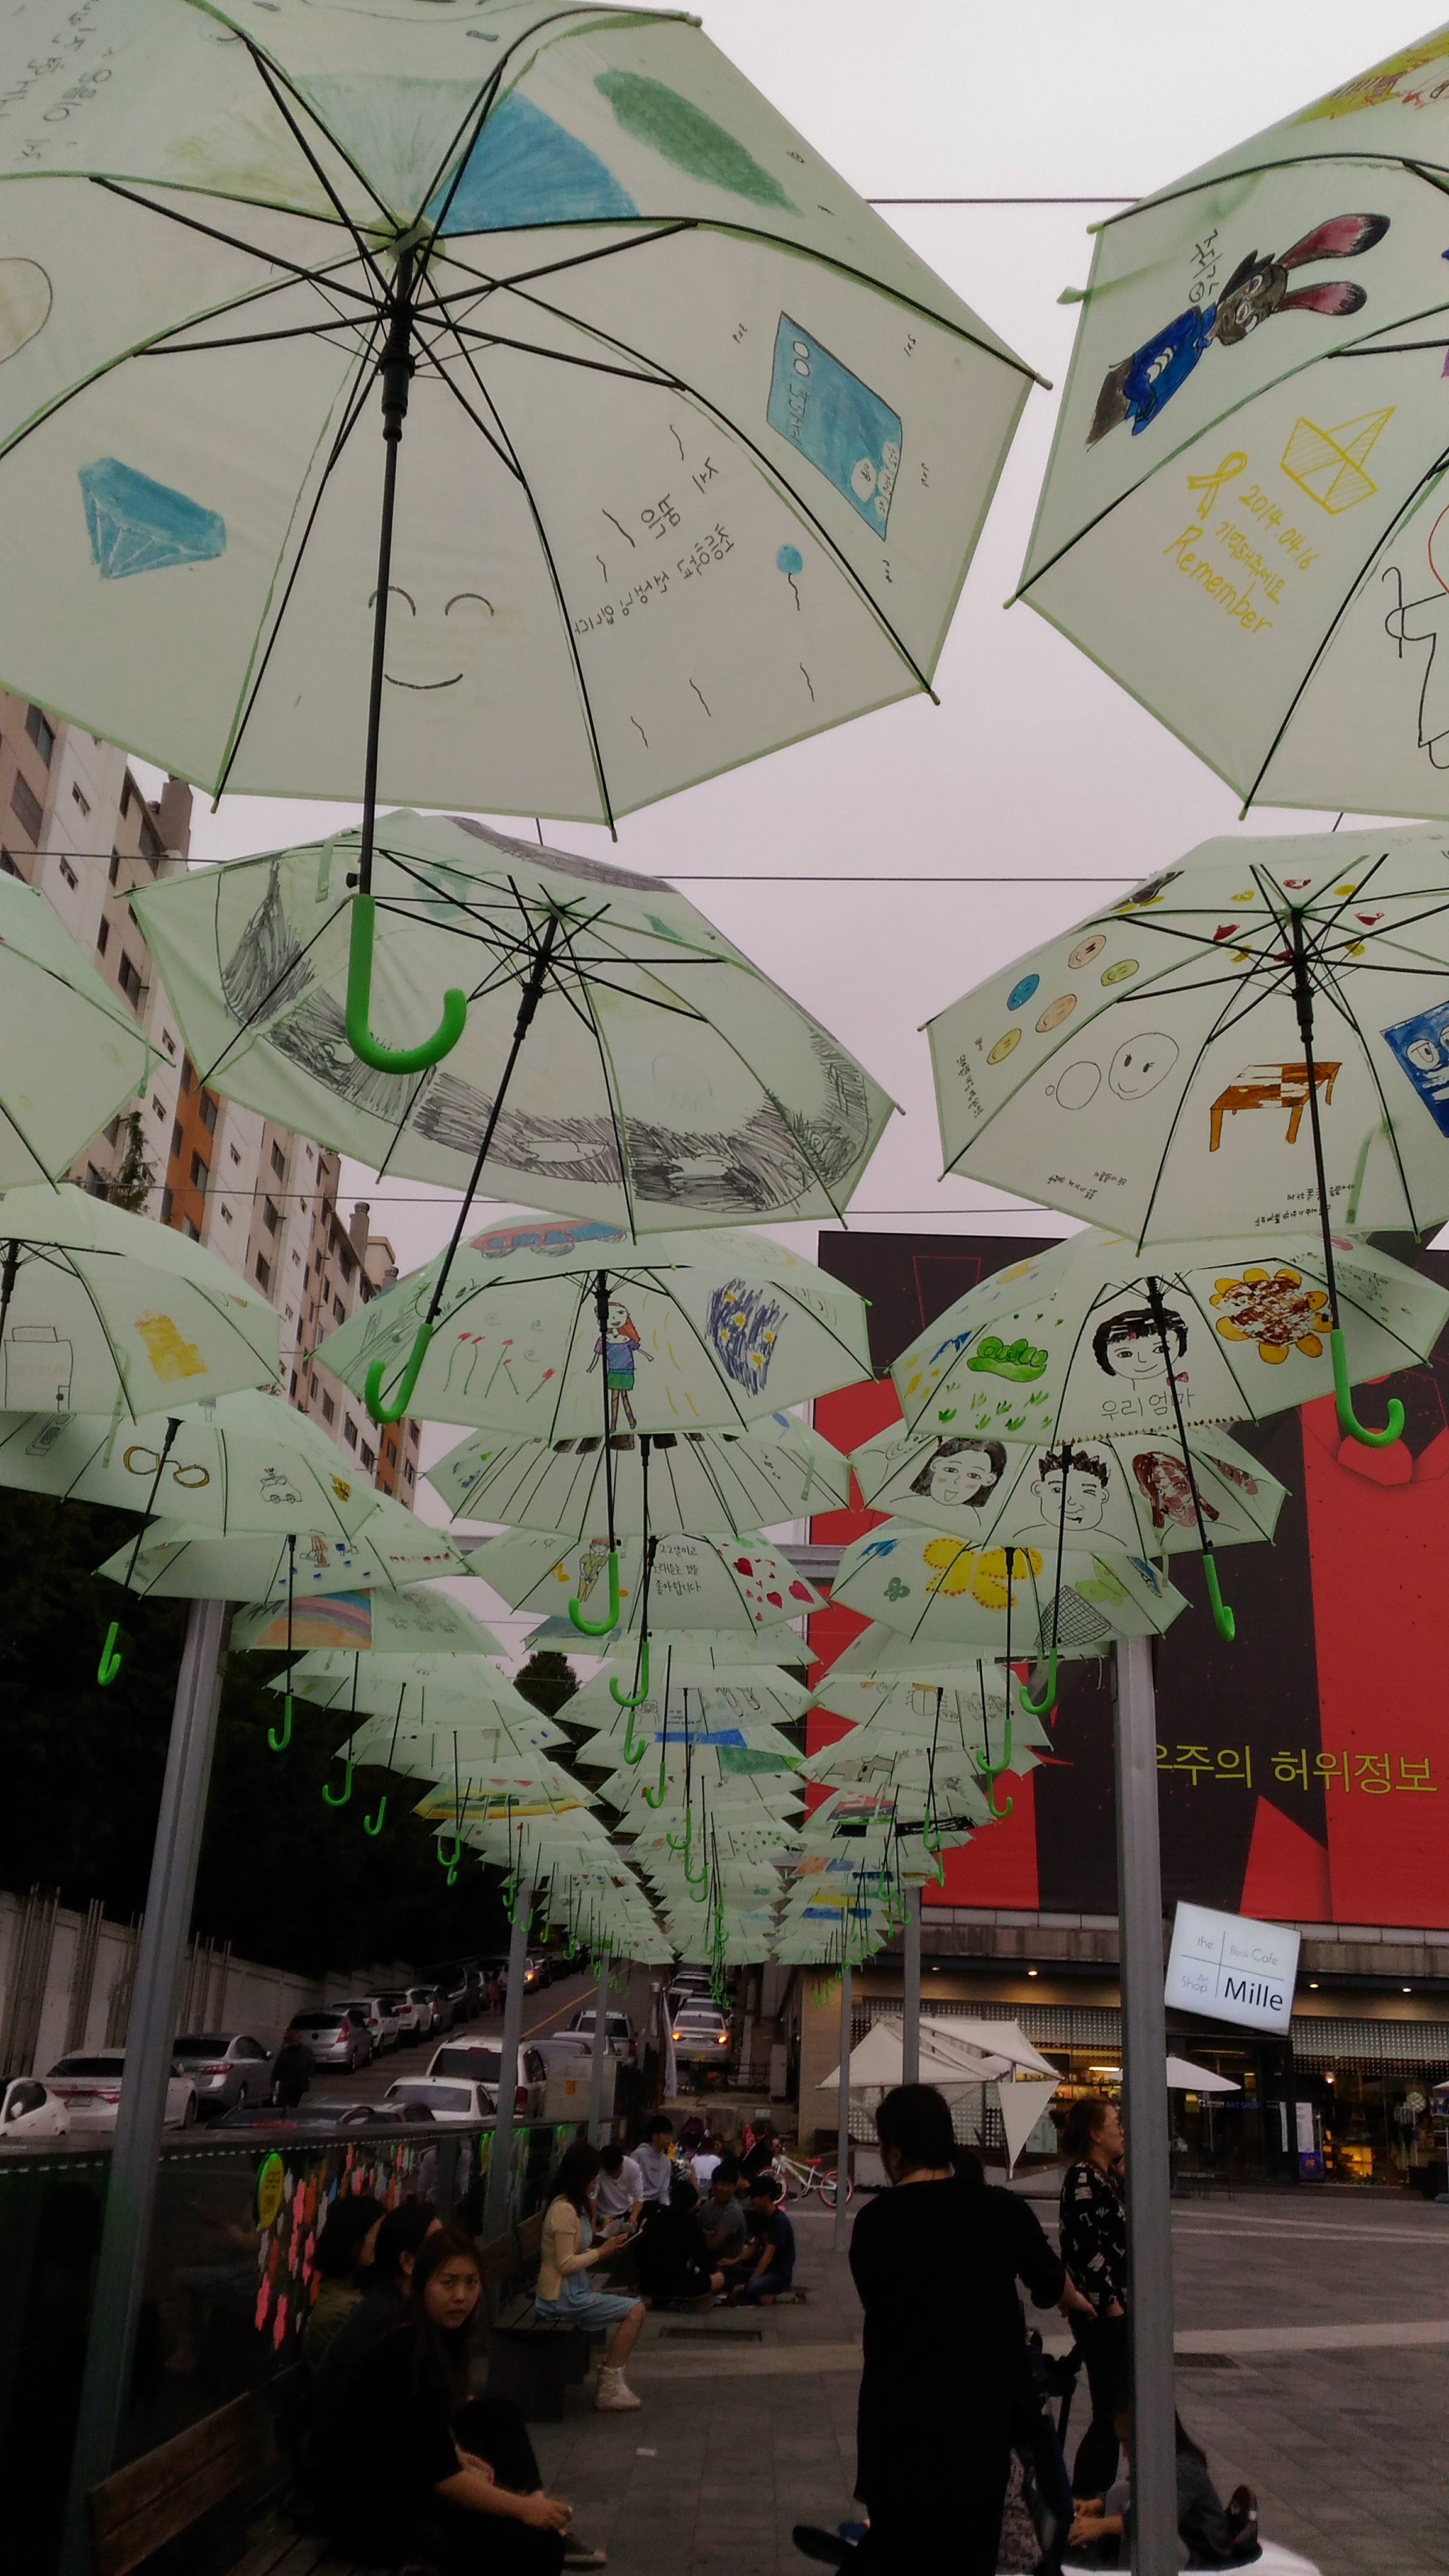 By children, drawings on umbrellas.